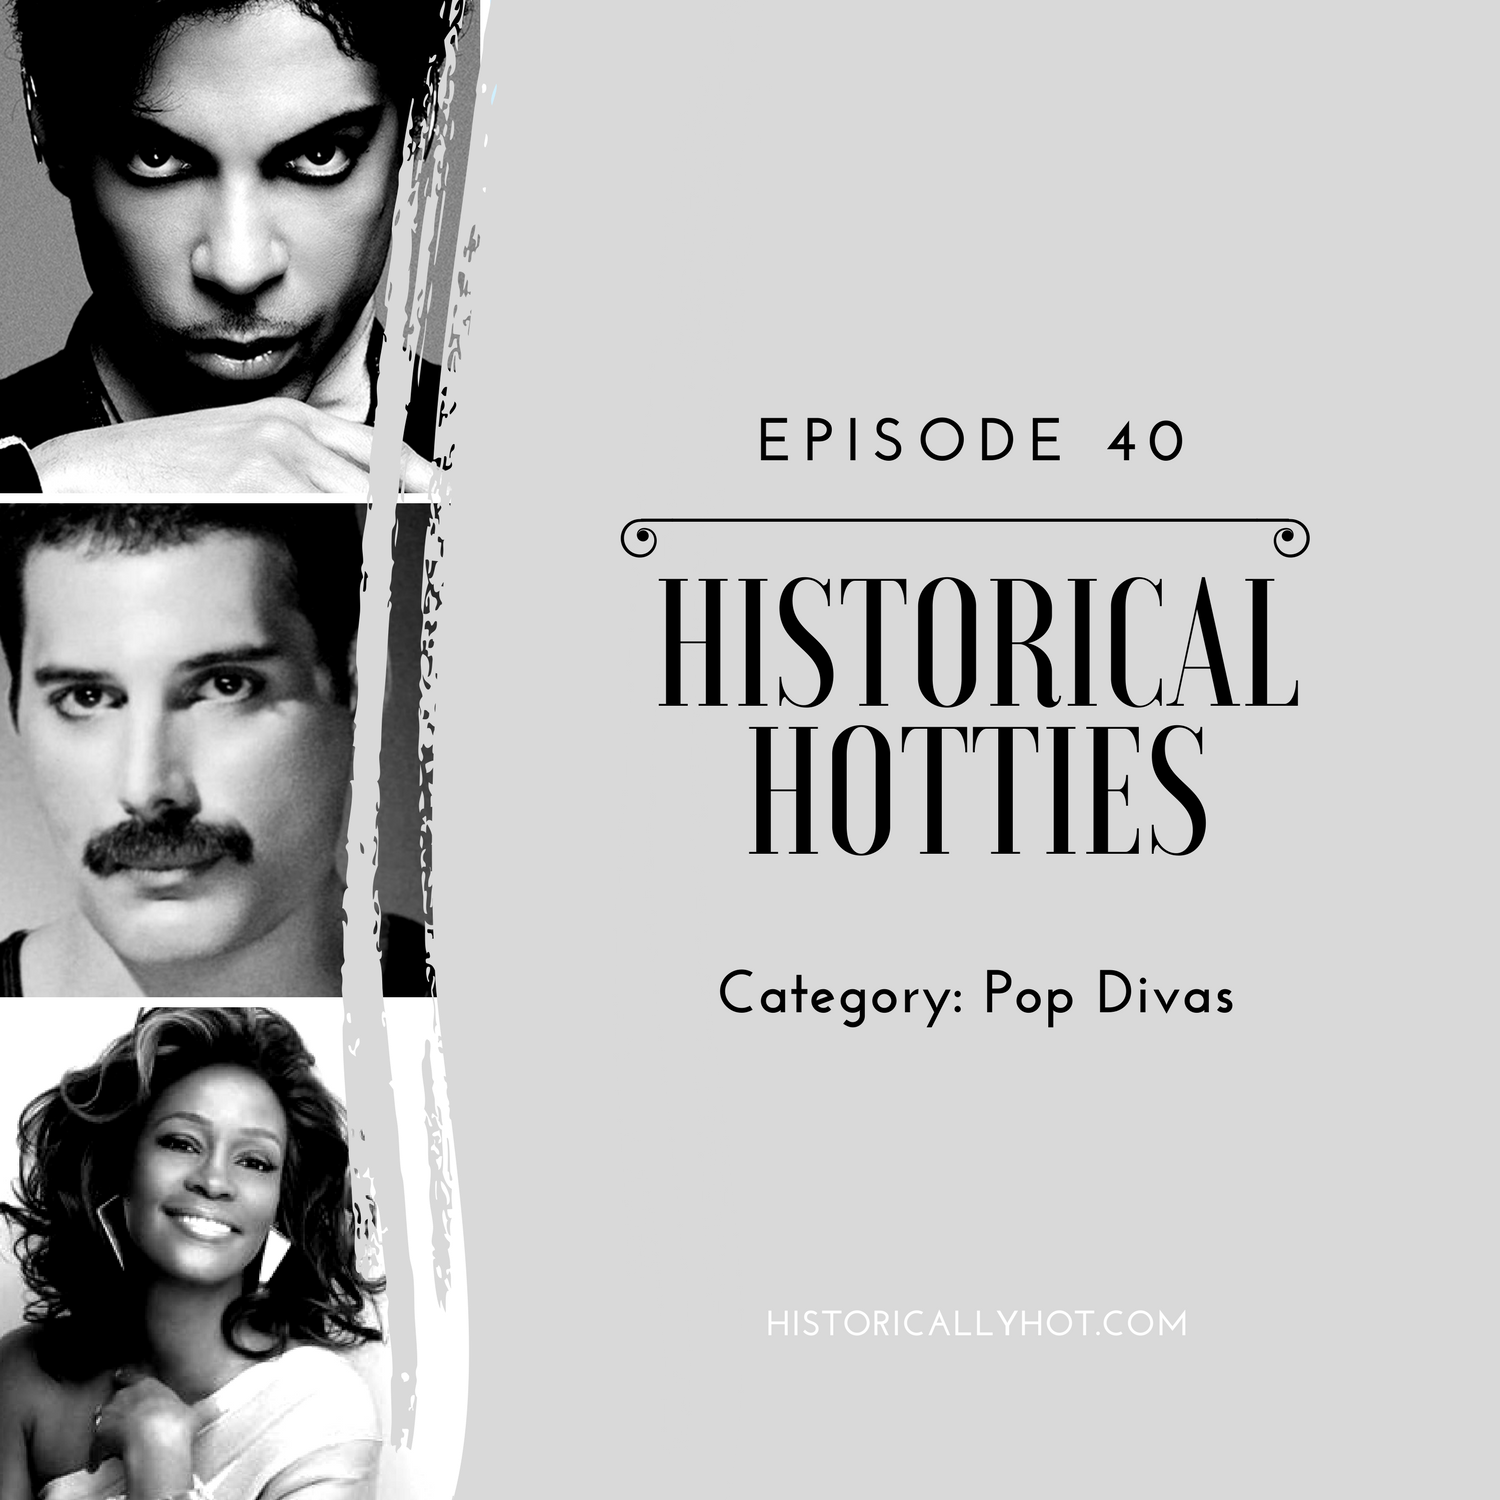 historical hotties pop diva